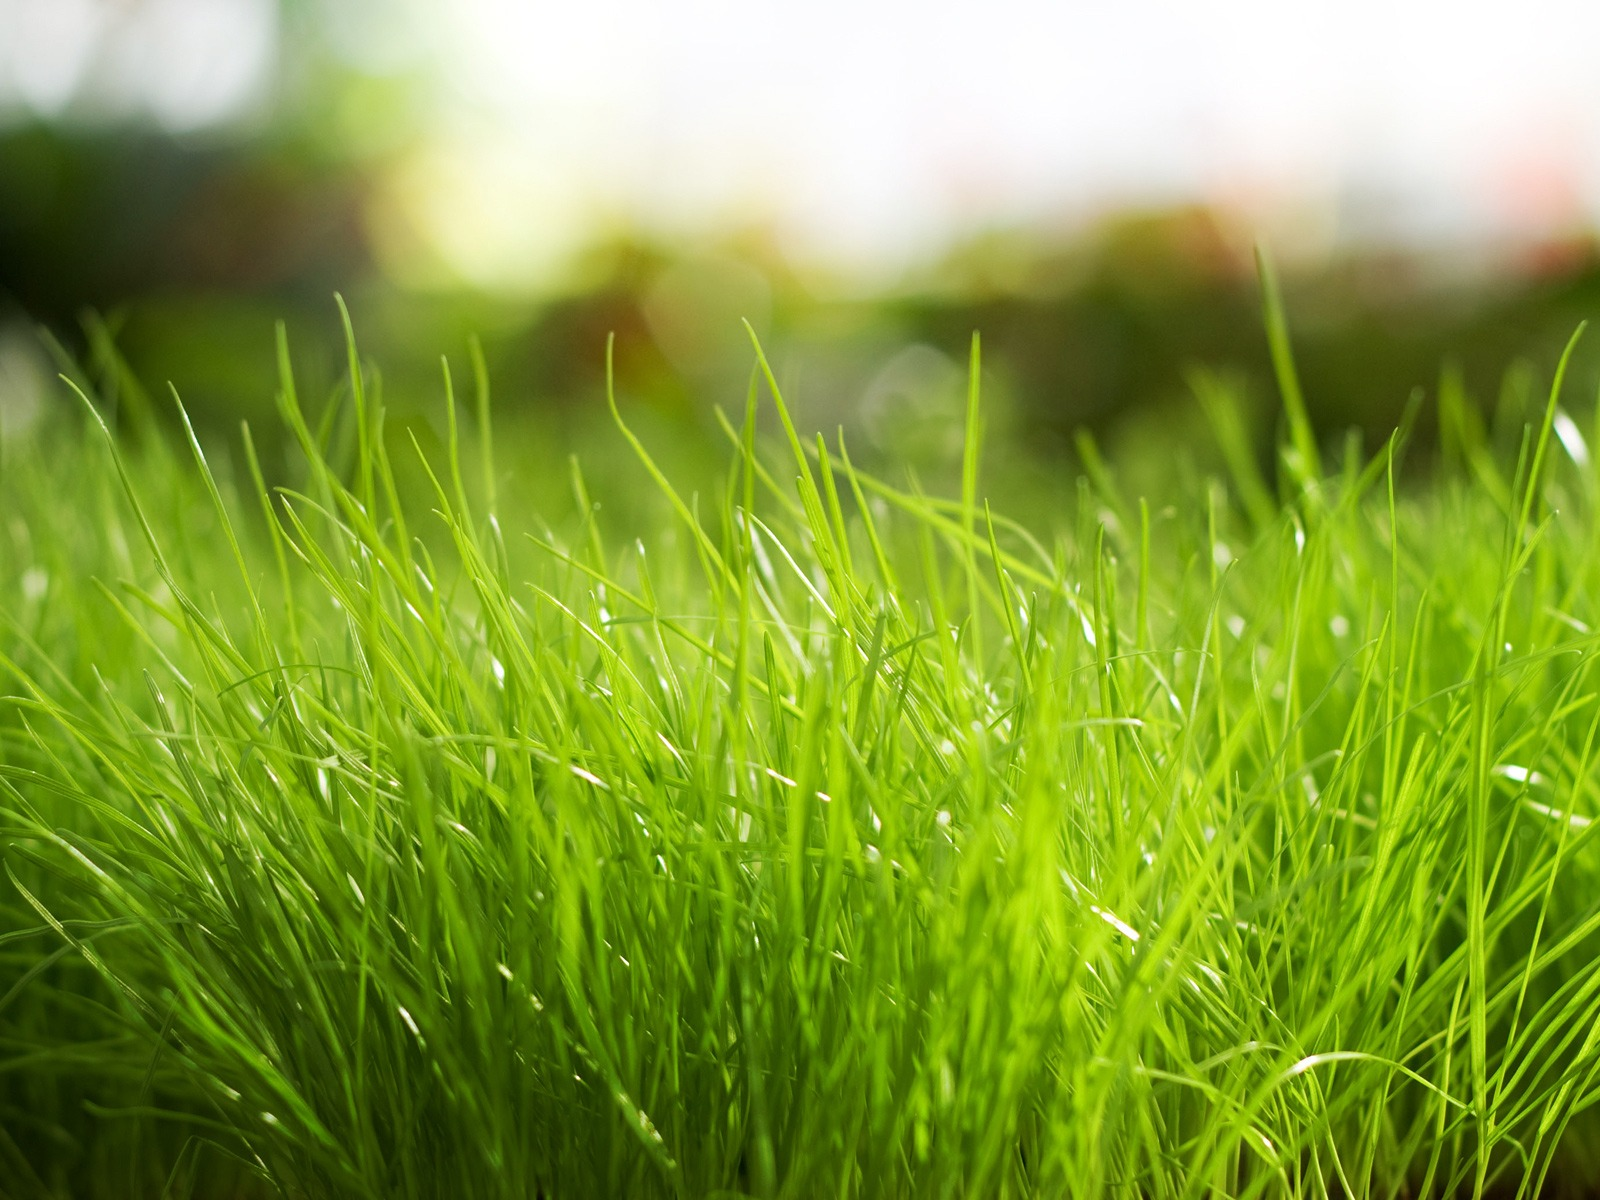 ... Green Grass Backgrounds for Presentations